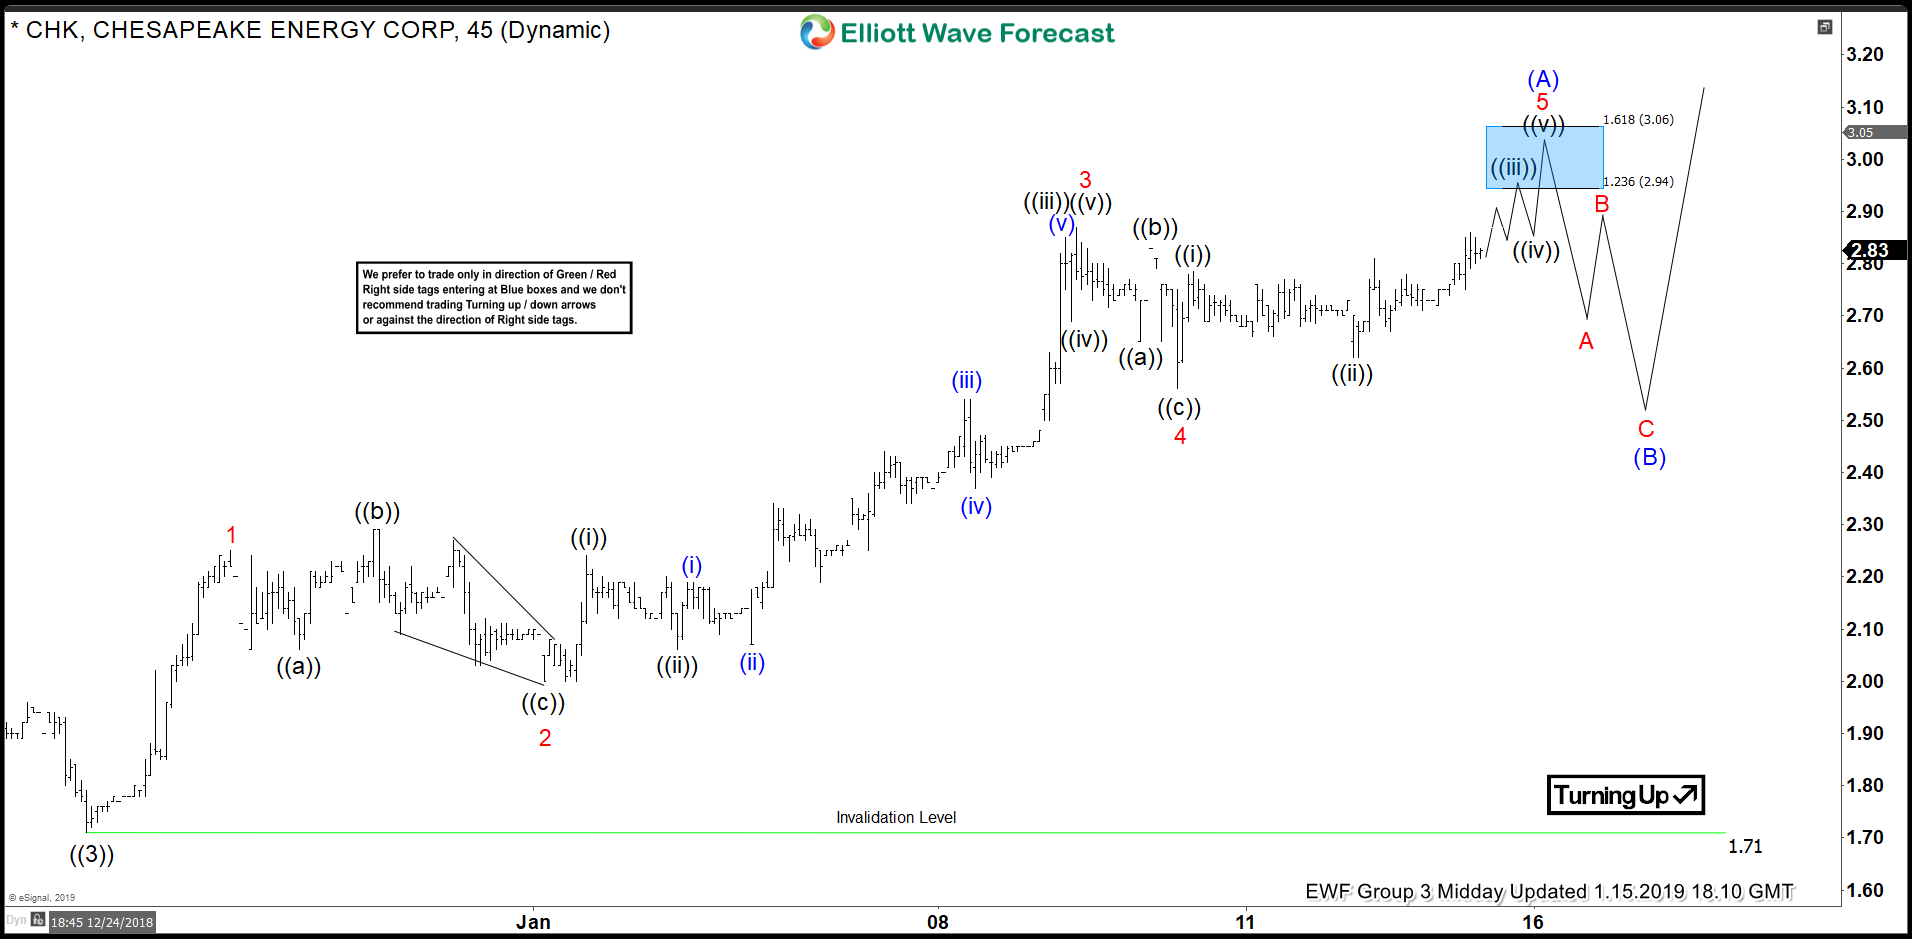 Elliott Wave Hedging Suggests More Upside in CHK